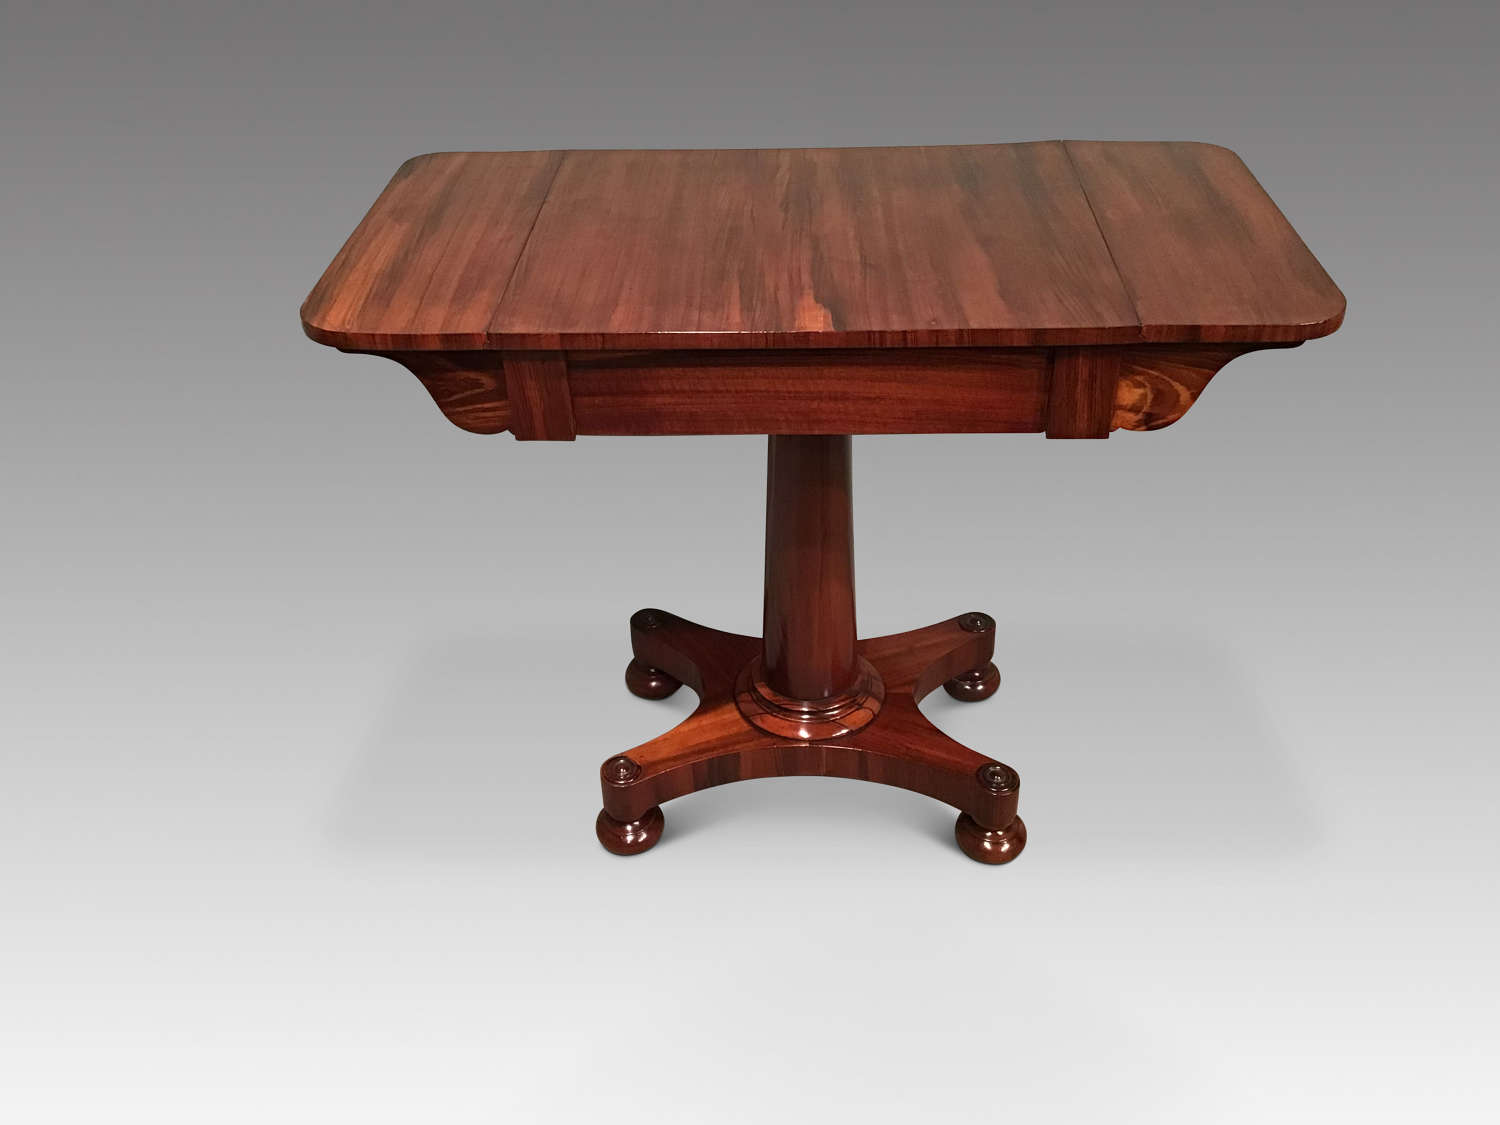 William IV Gonçalo Alves table